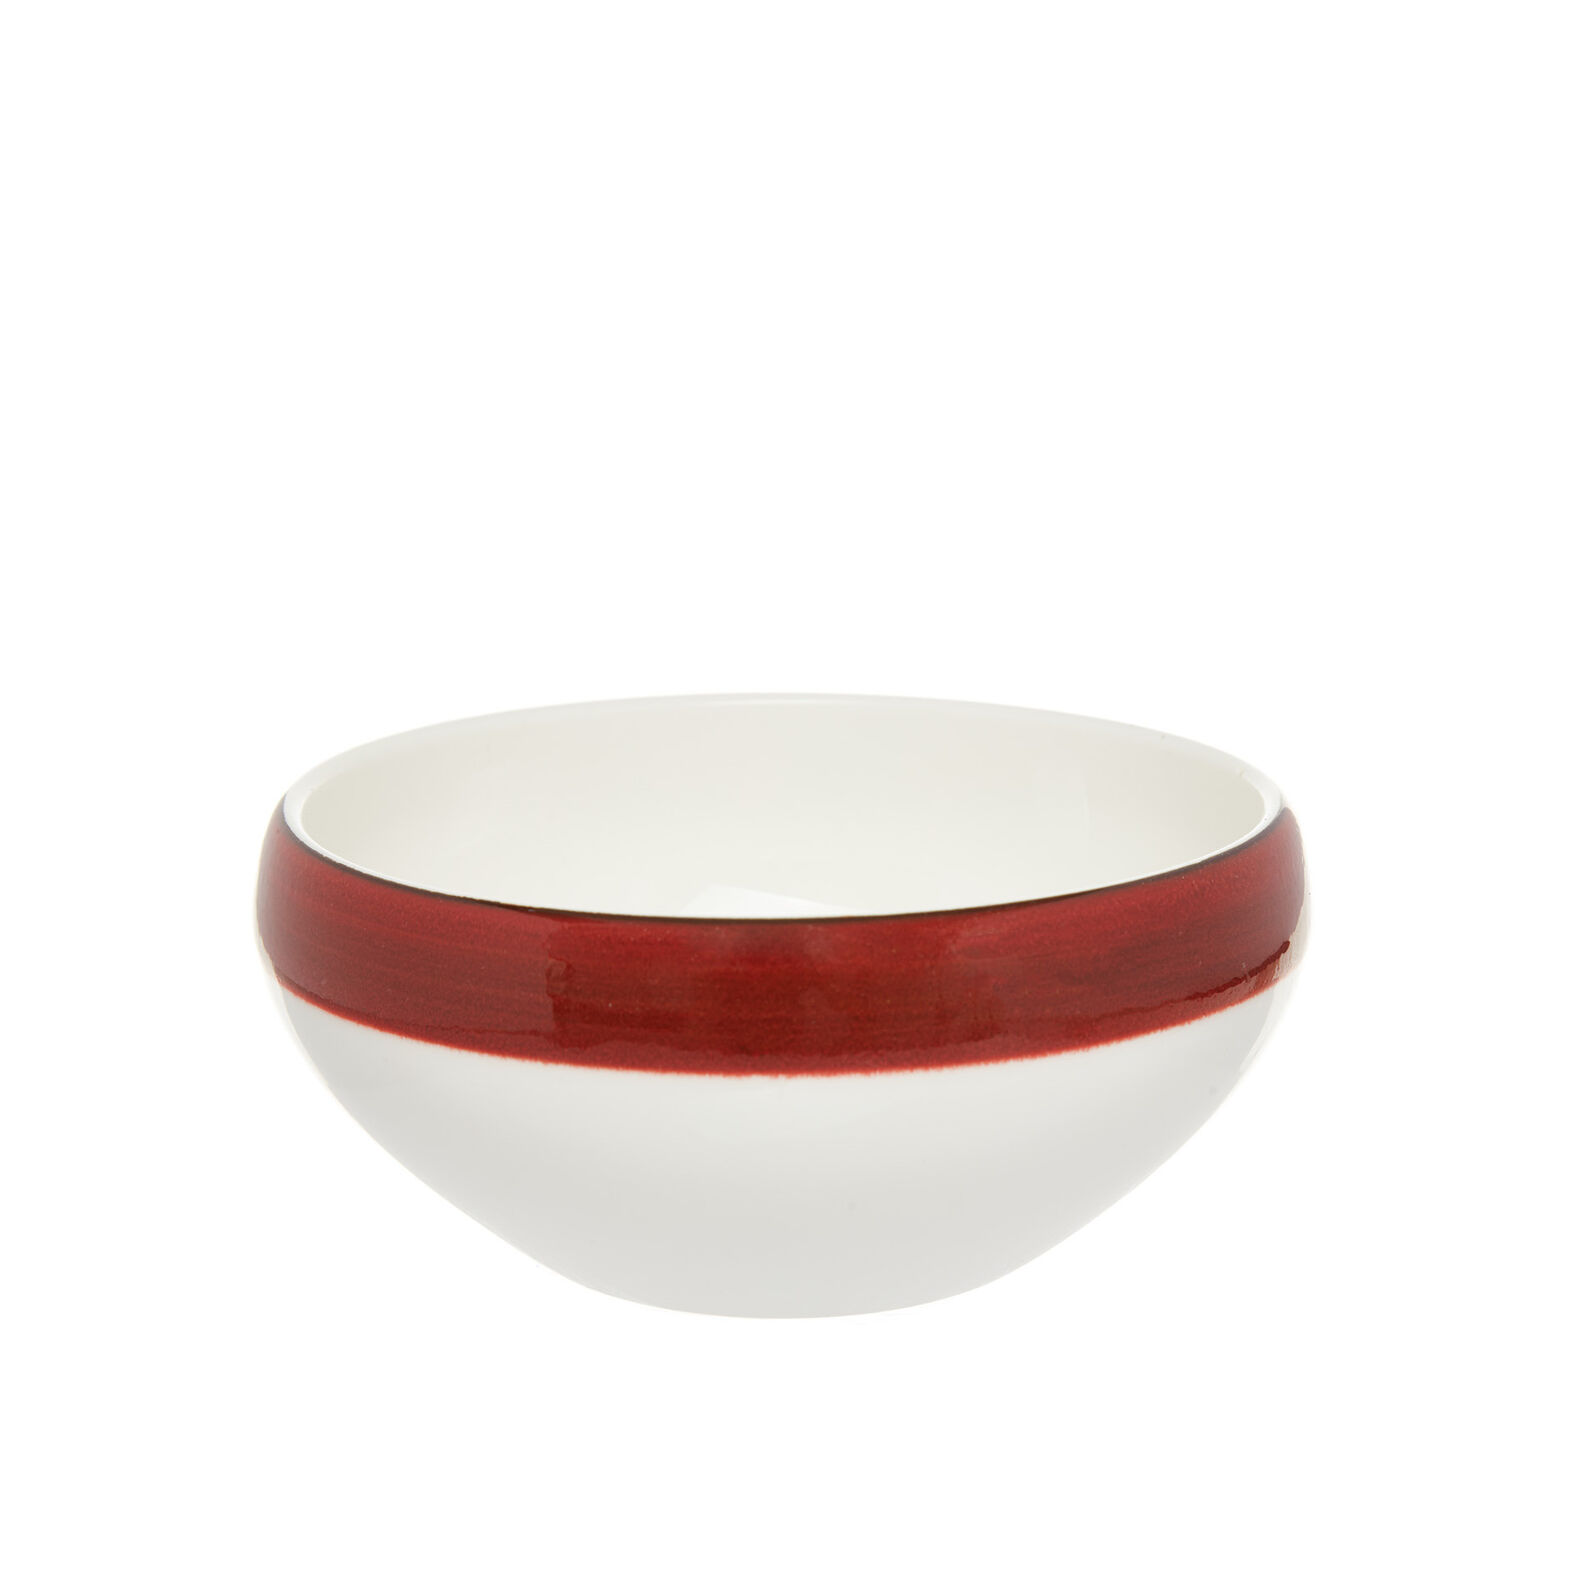 Speckled-effect porcelain bowl